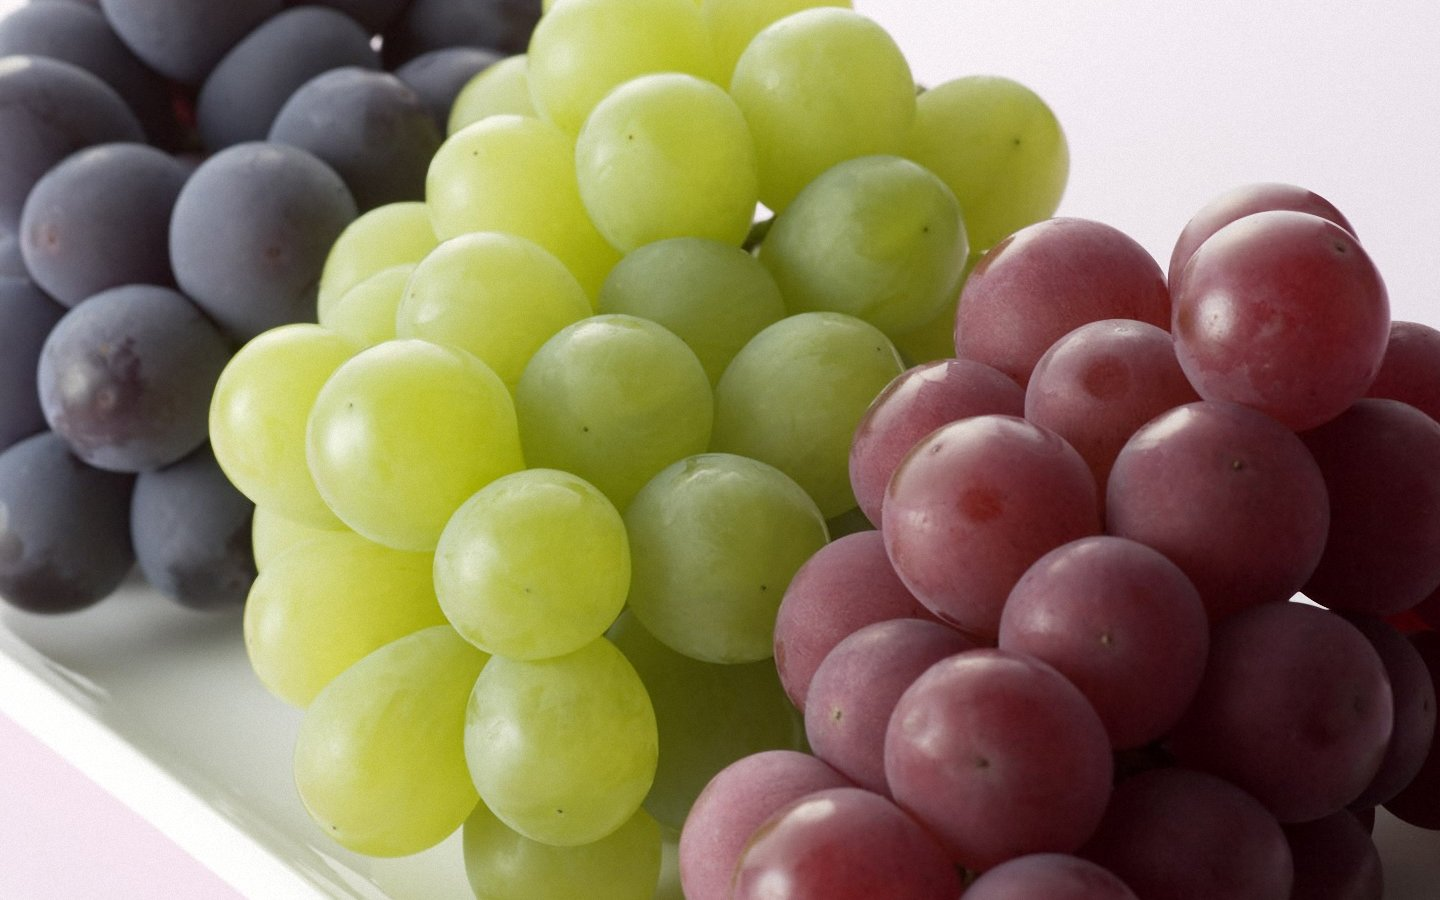 Grape Wallpaper 1440x900 Wallpapers 1440x900 Wallpapers 1440x900